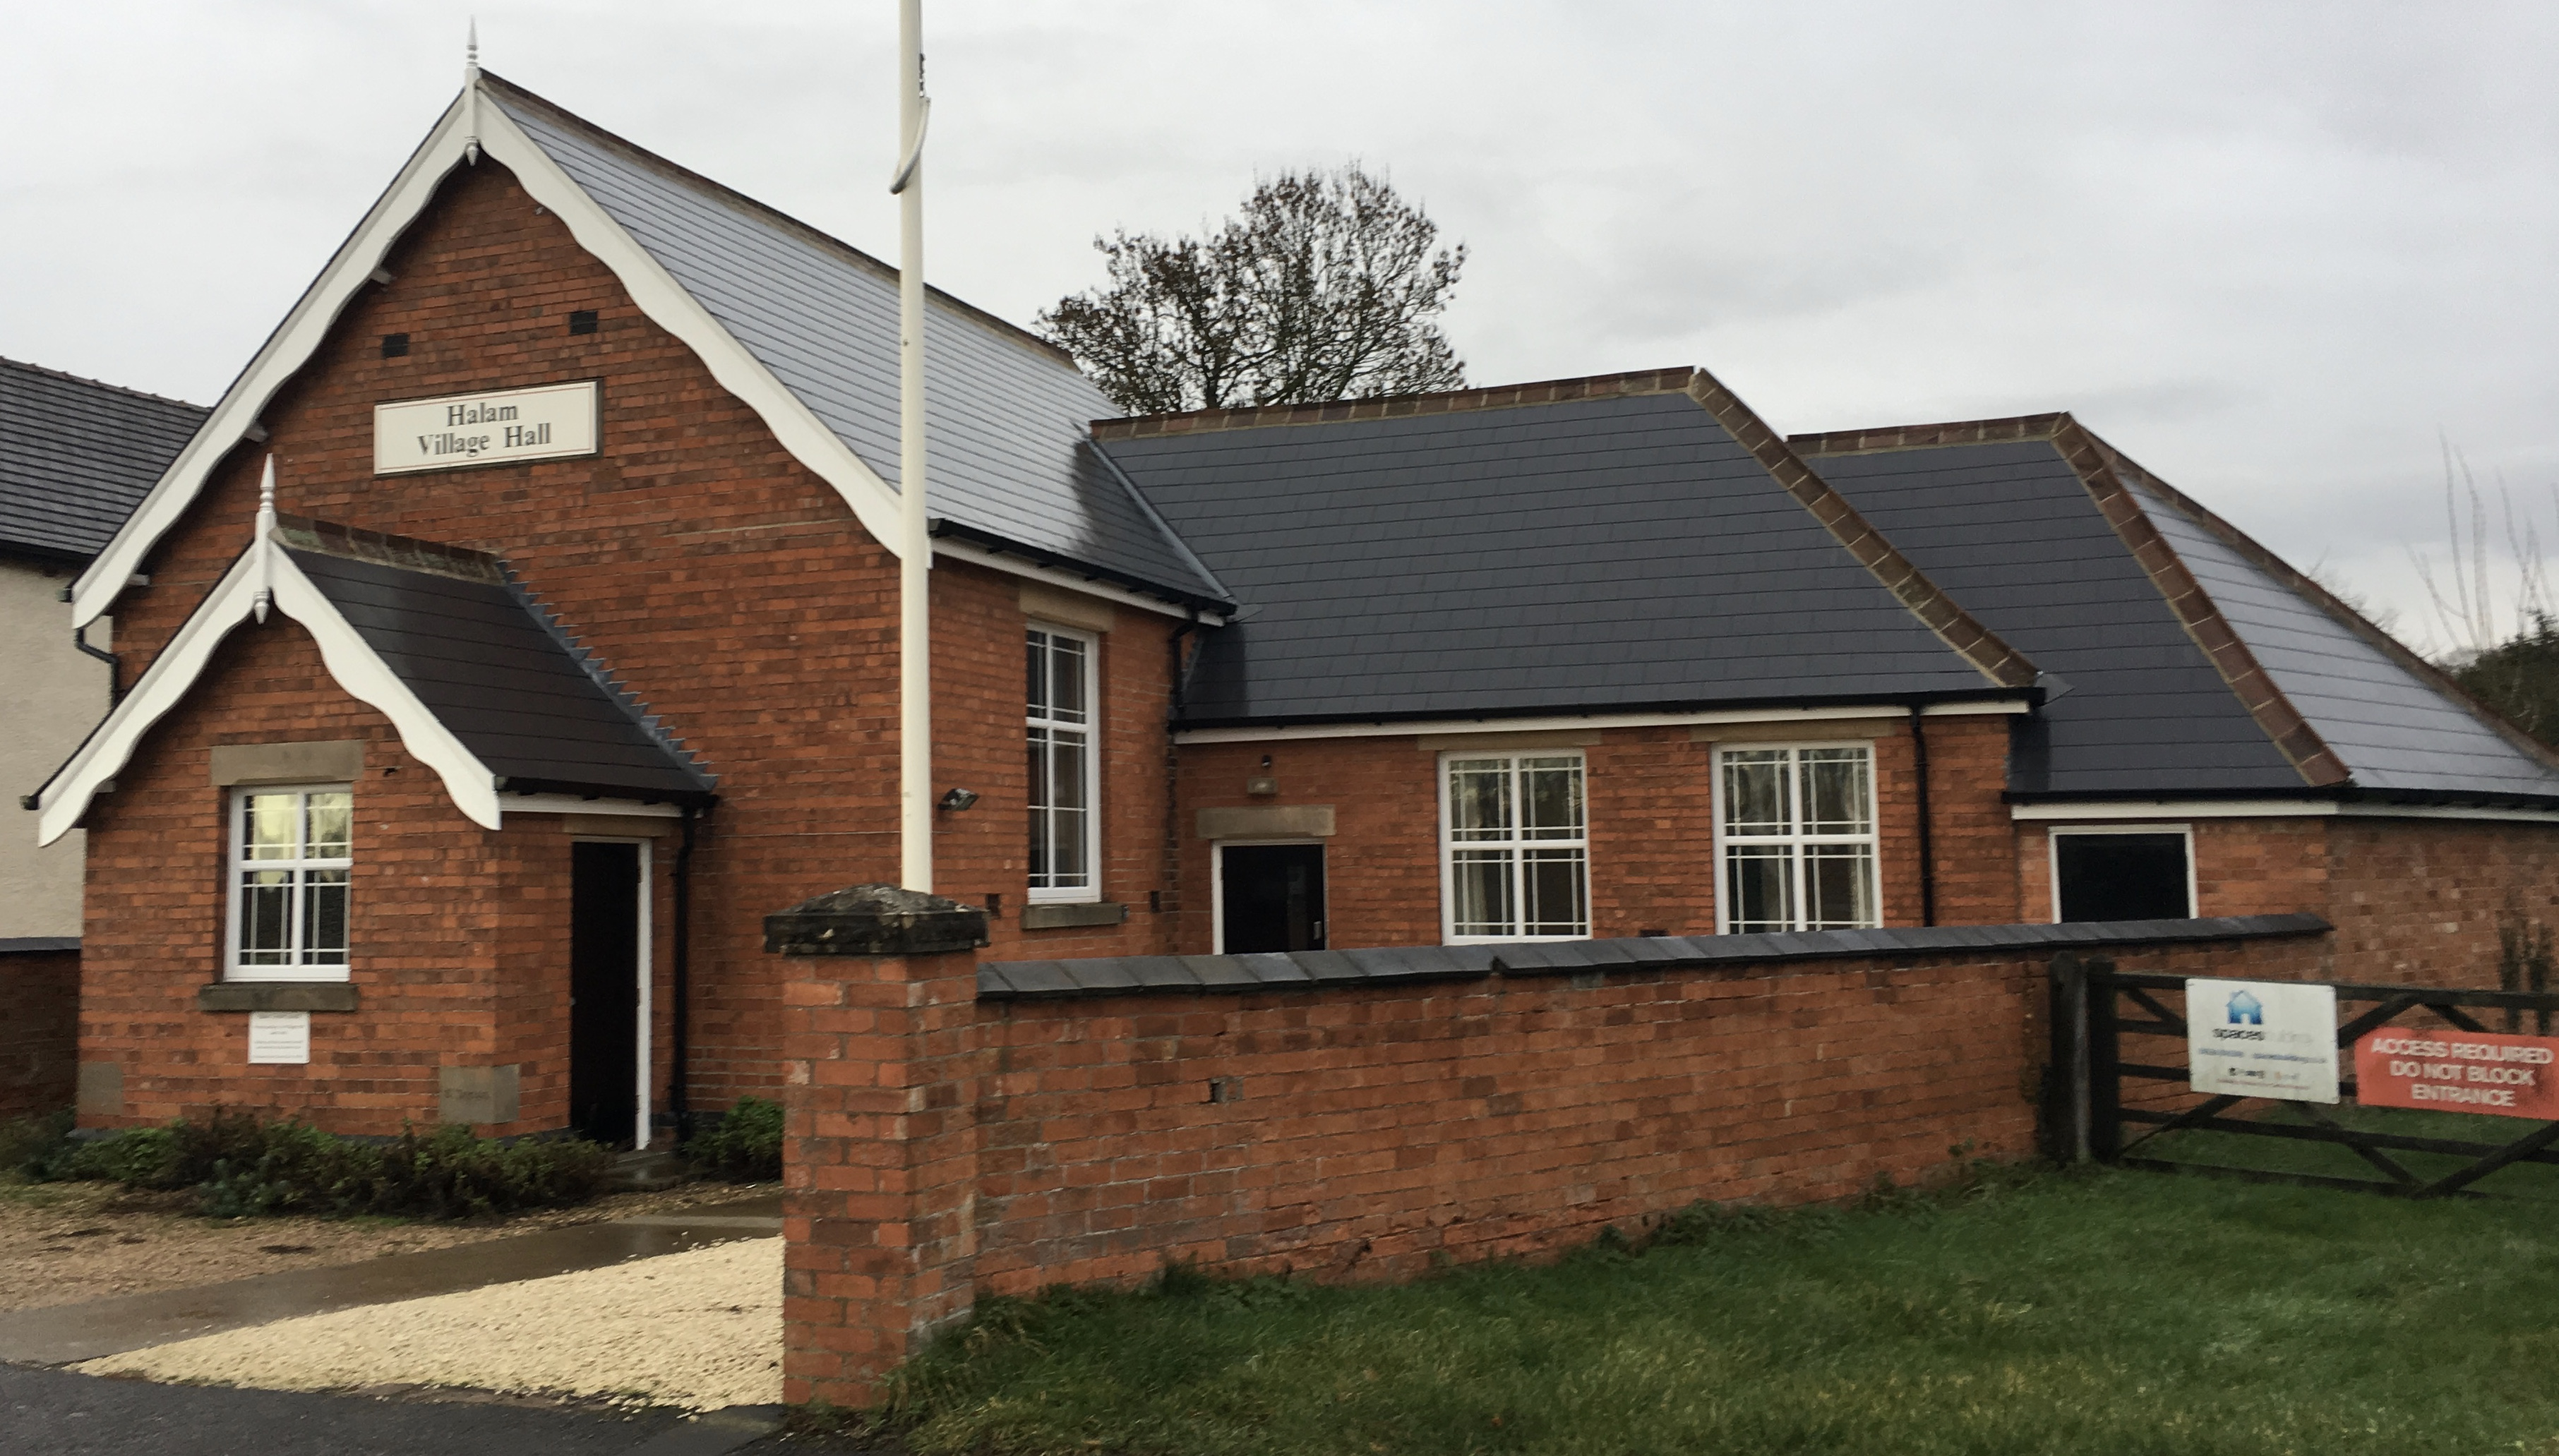 Halam, Nottinghamshire Hire Our Village Hall